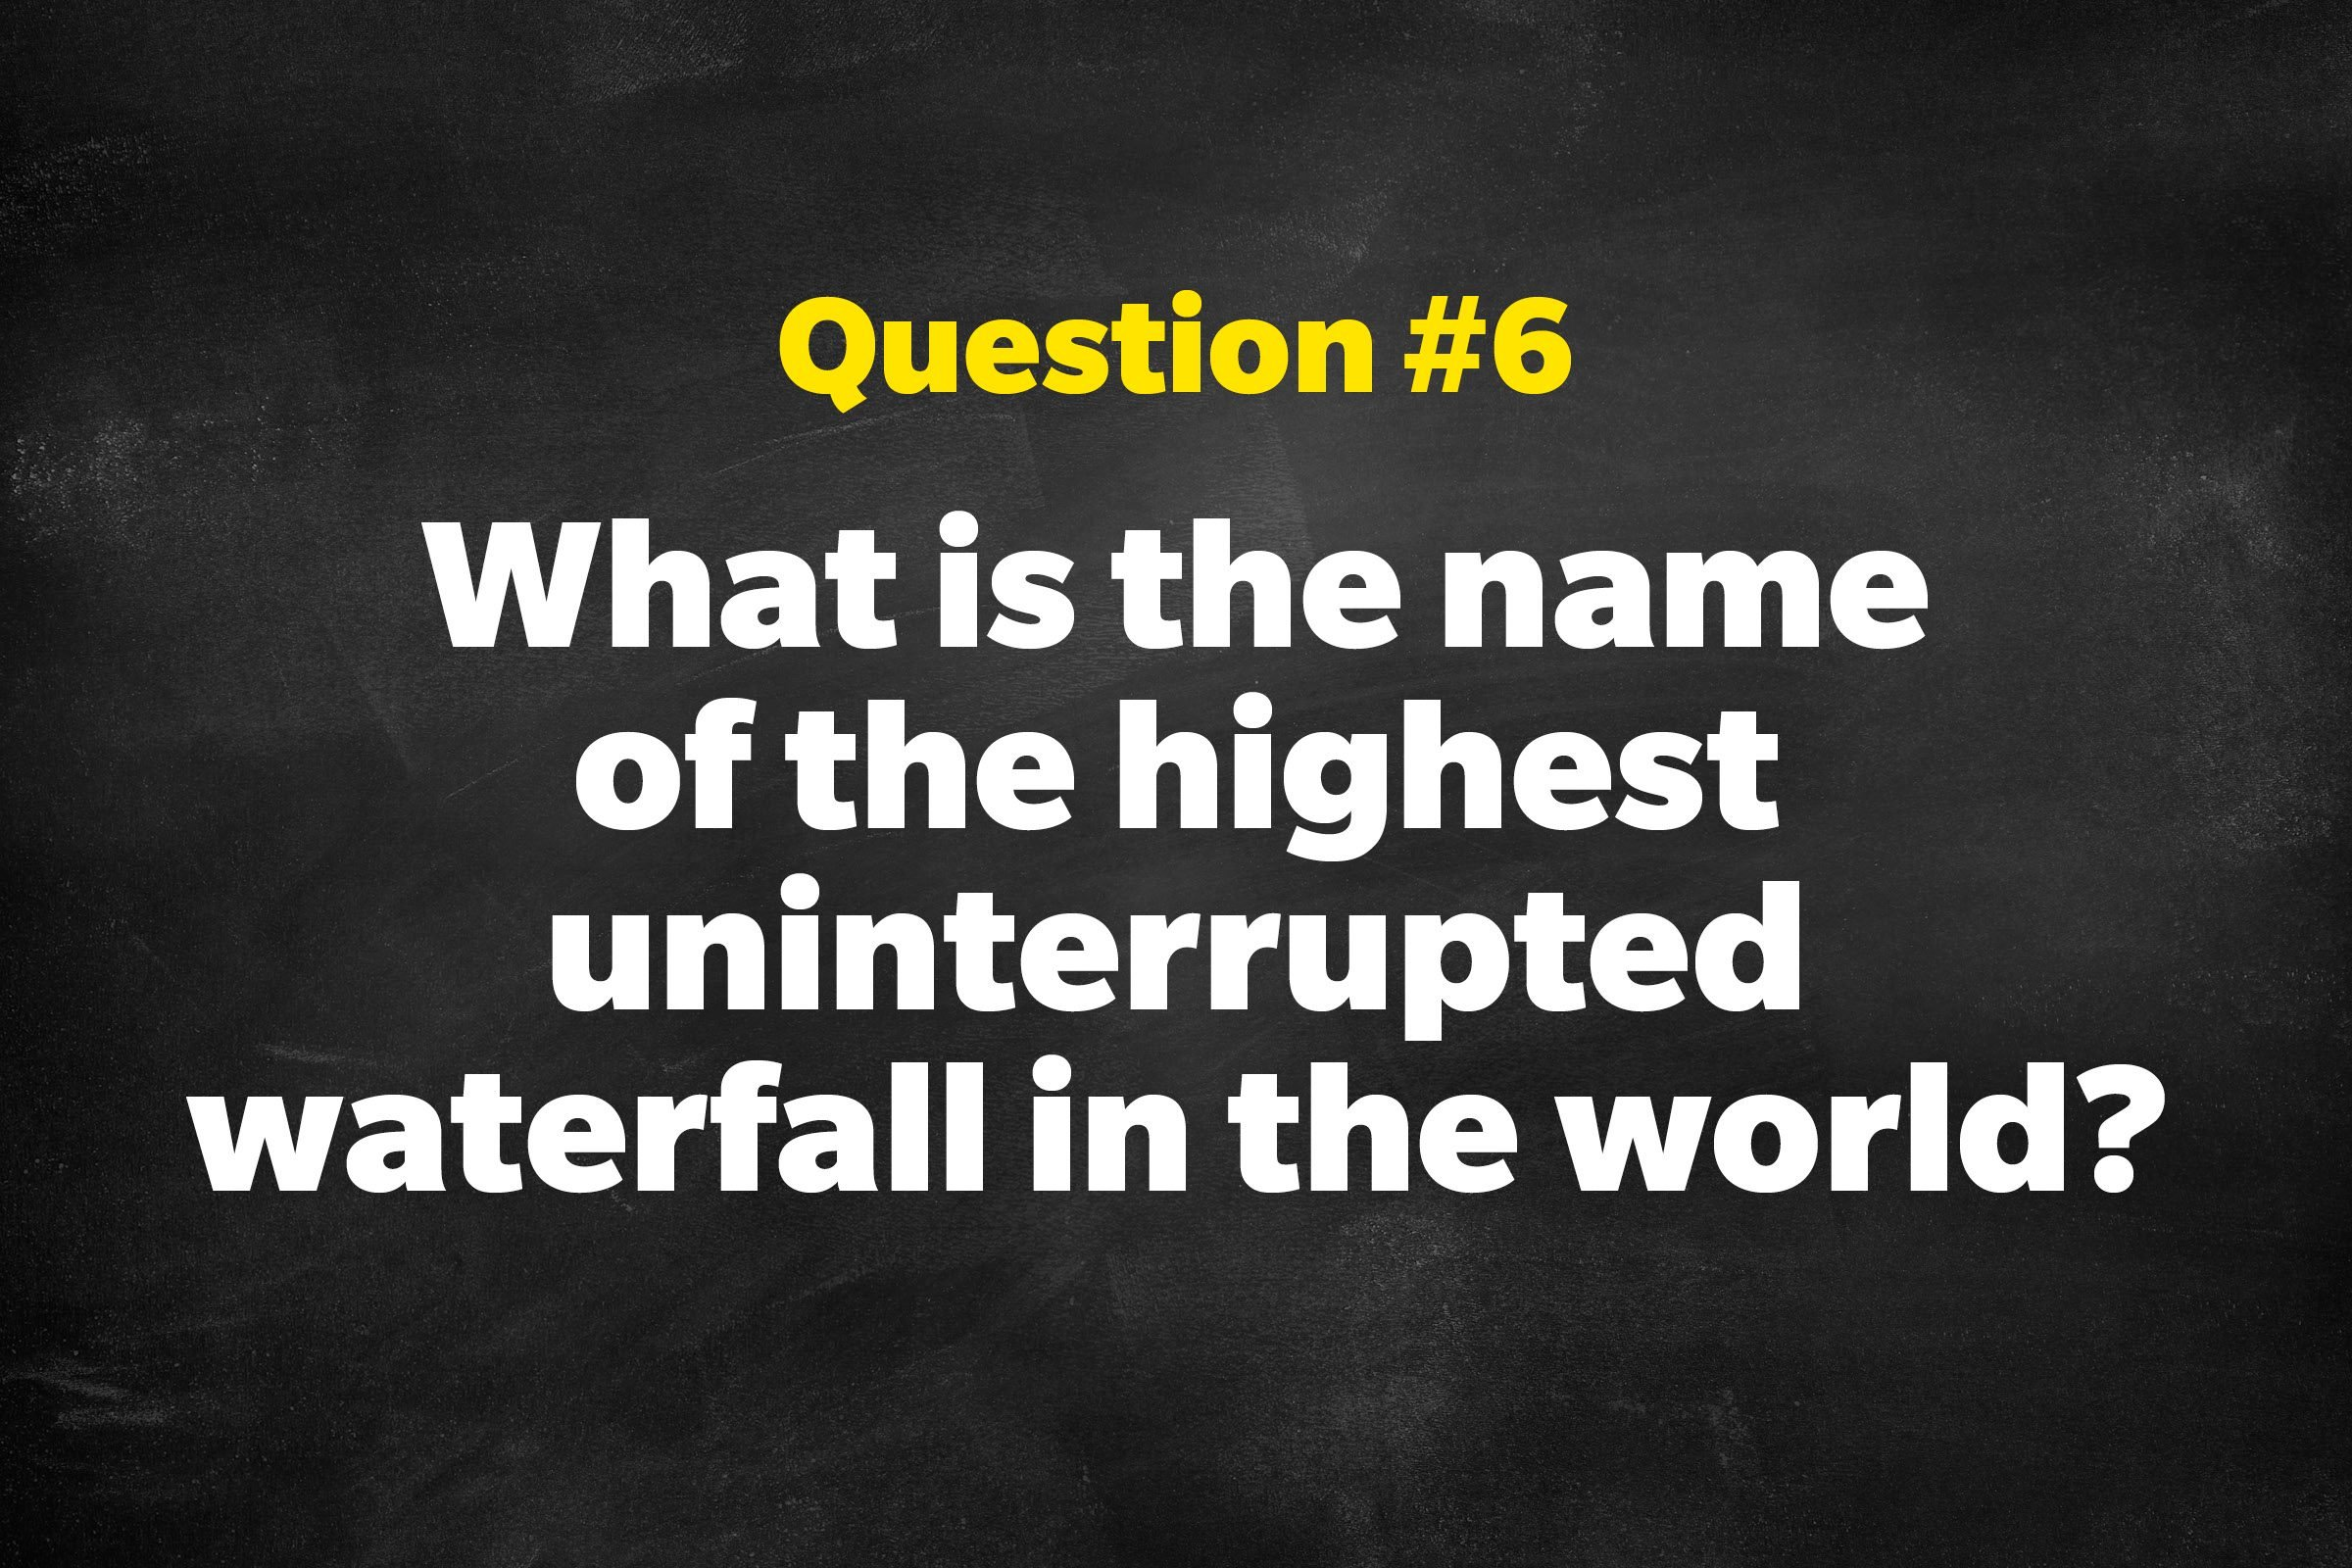 Question #6: What is the name of the highest uninterrupted waterfall in the world?